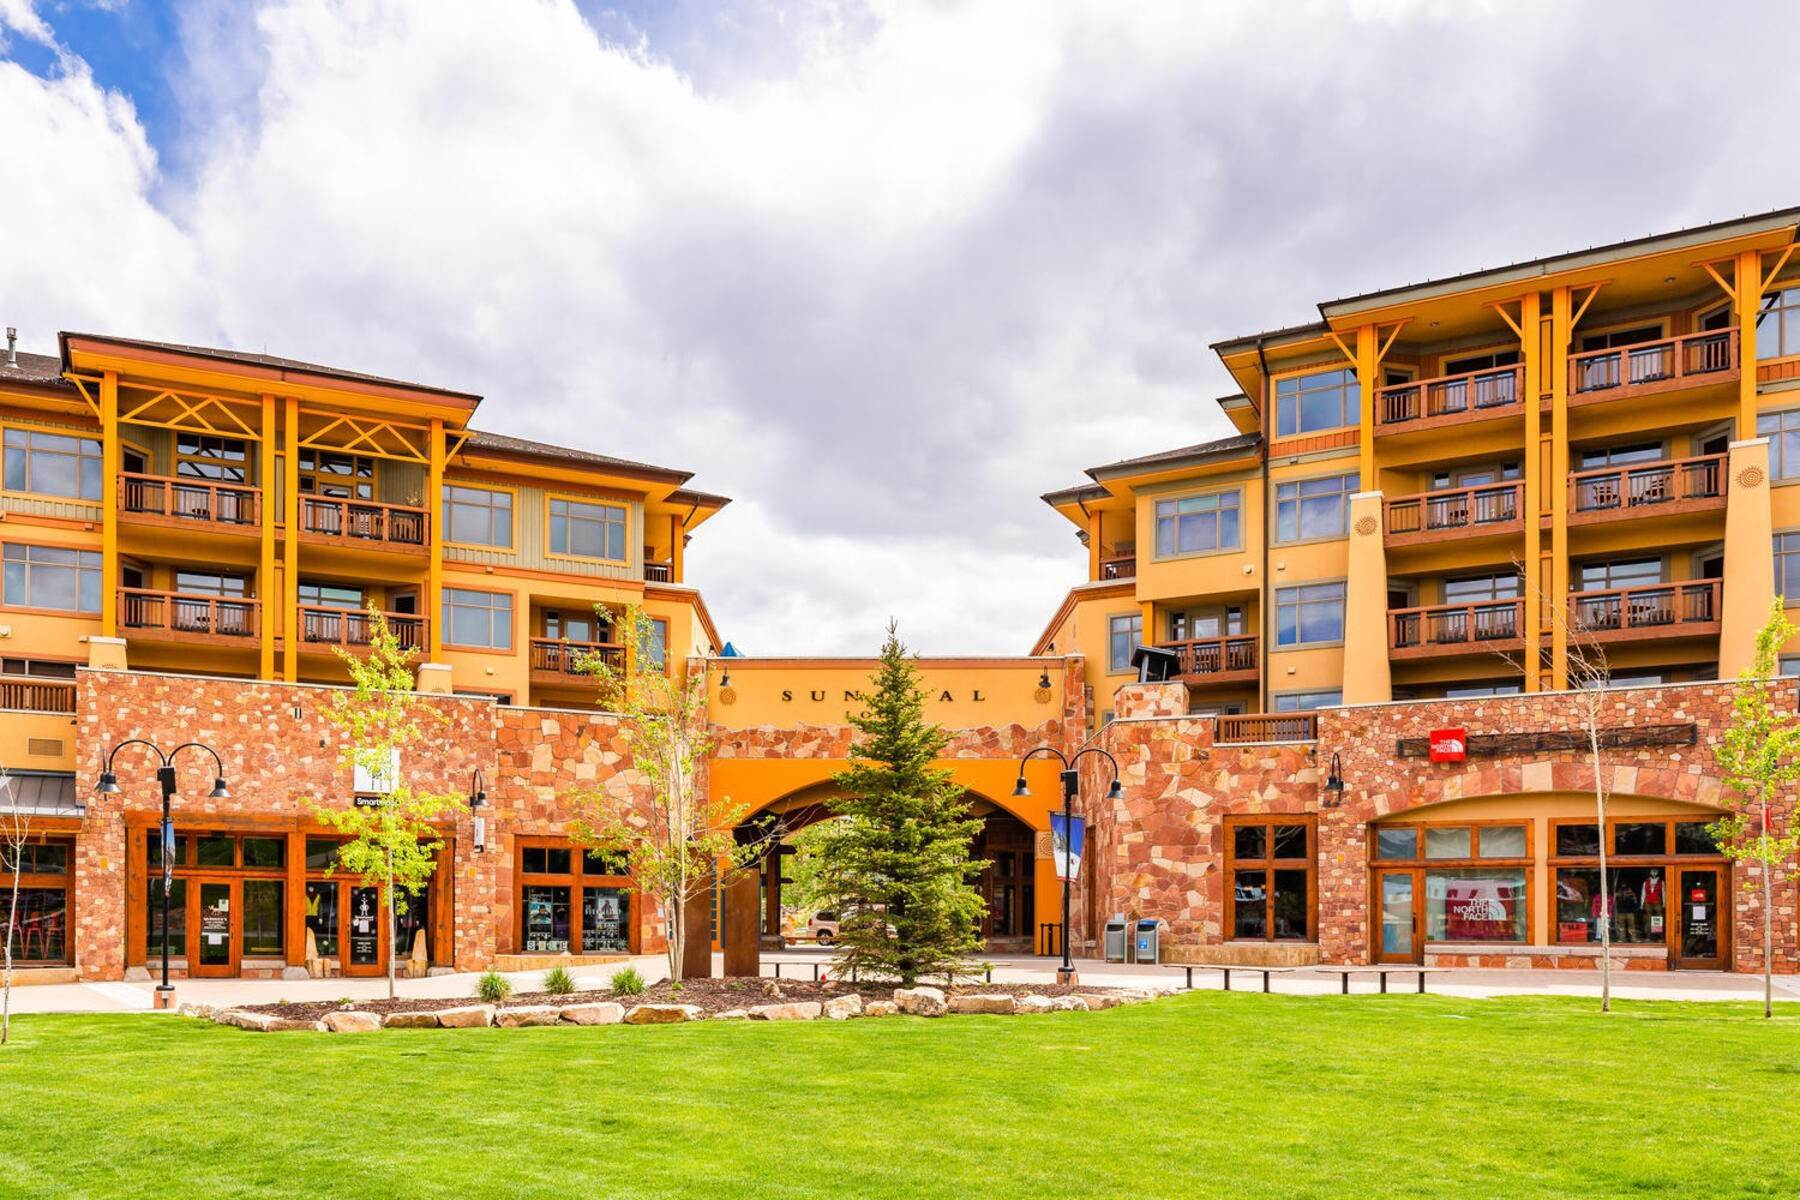 Condominiums for Sale at Ski In/Ski Out Sundial Lodge Condo With Expansive Balcony And Views 3720 N Sundial Court #C208 Park City, Utah 84098 United States